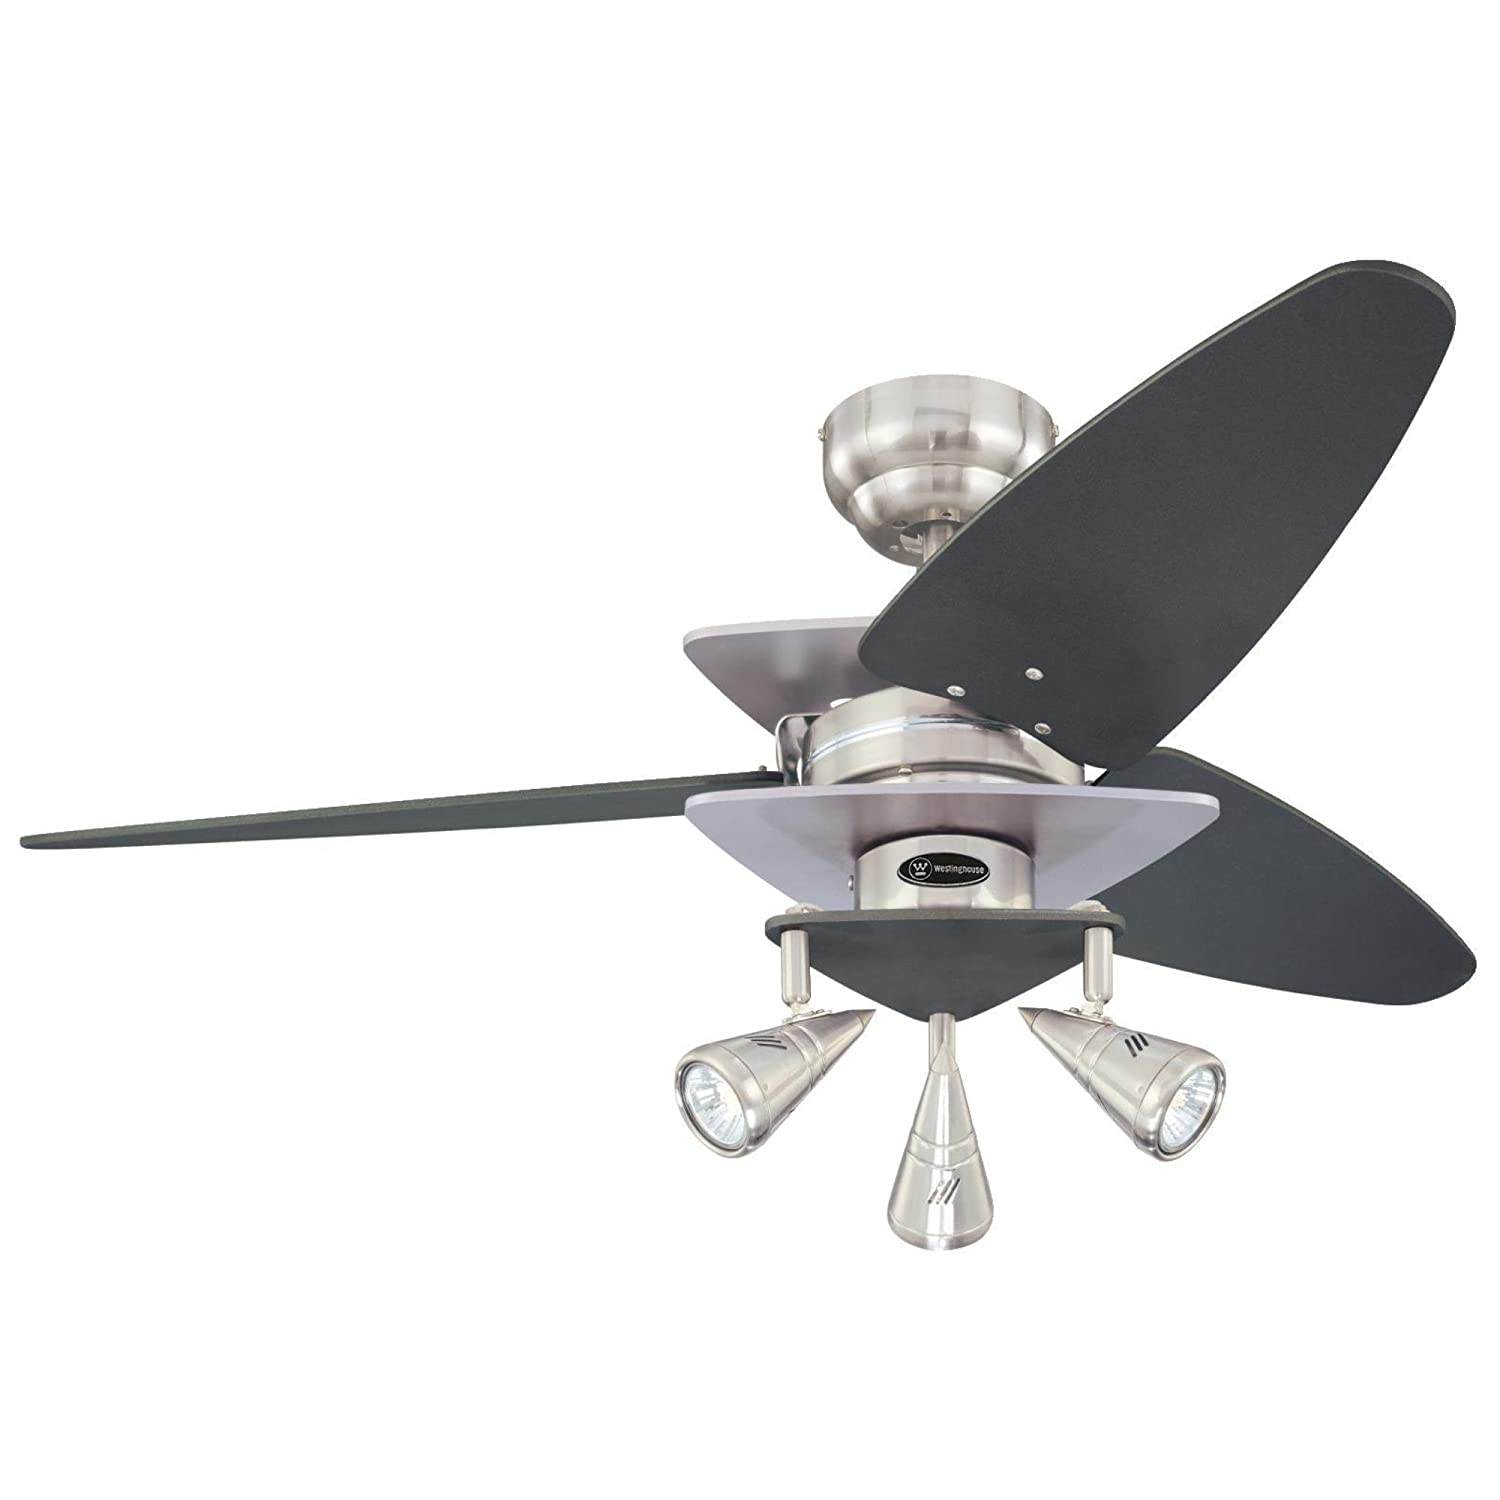 Westinghouse Lighting 7850700 Vector Elite Light 42-Inch Reversible Three-Blade Indoor Ceiling Fan, Brushed Nickel and Graphite with Spotlights